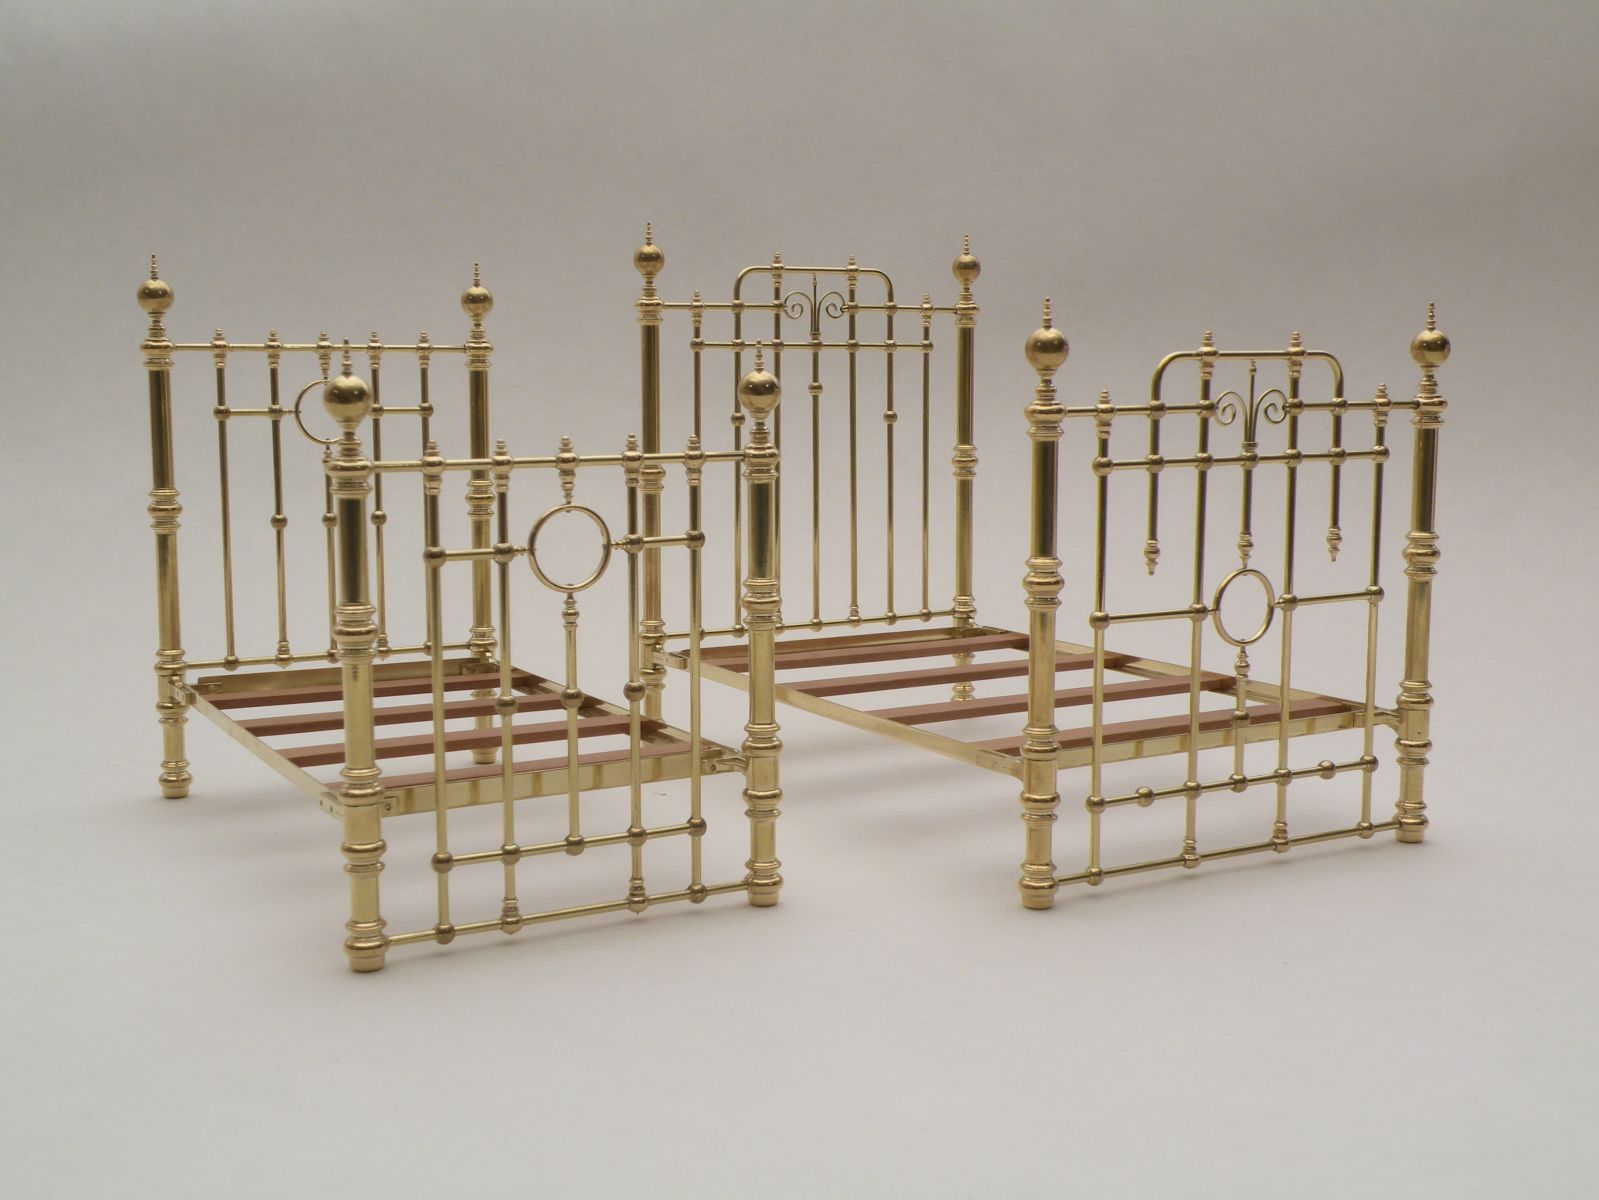 Brass Beds by Wm. R. Robertson